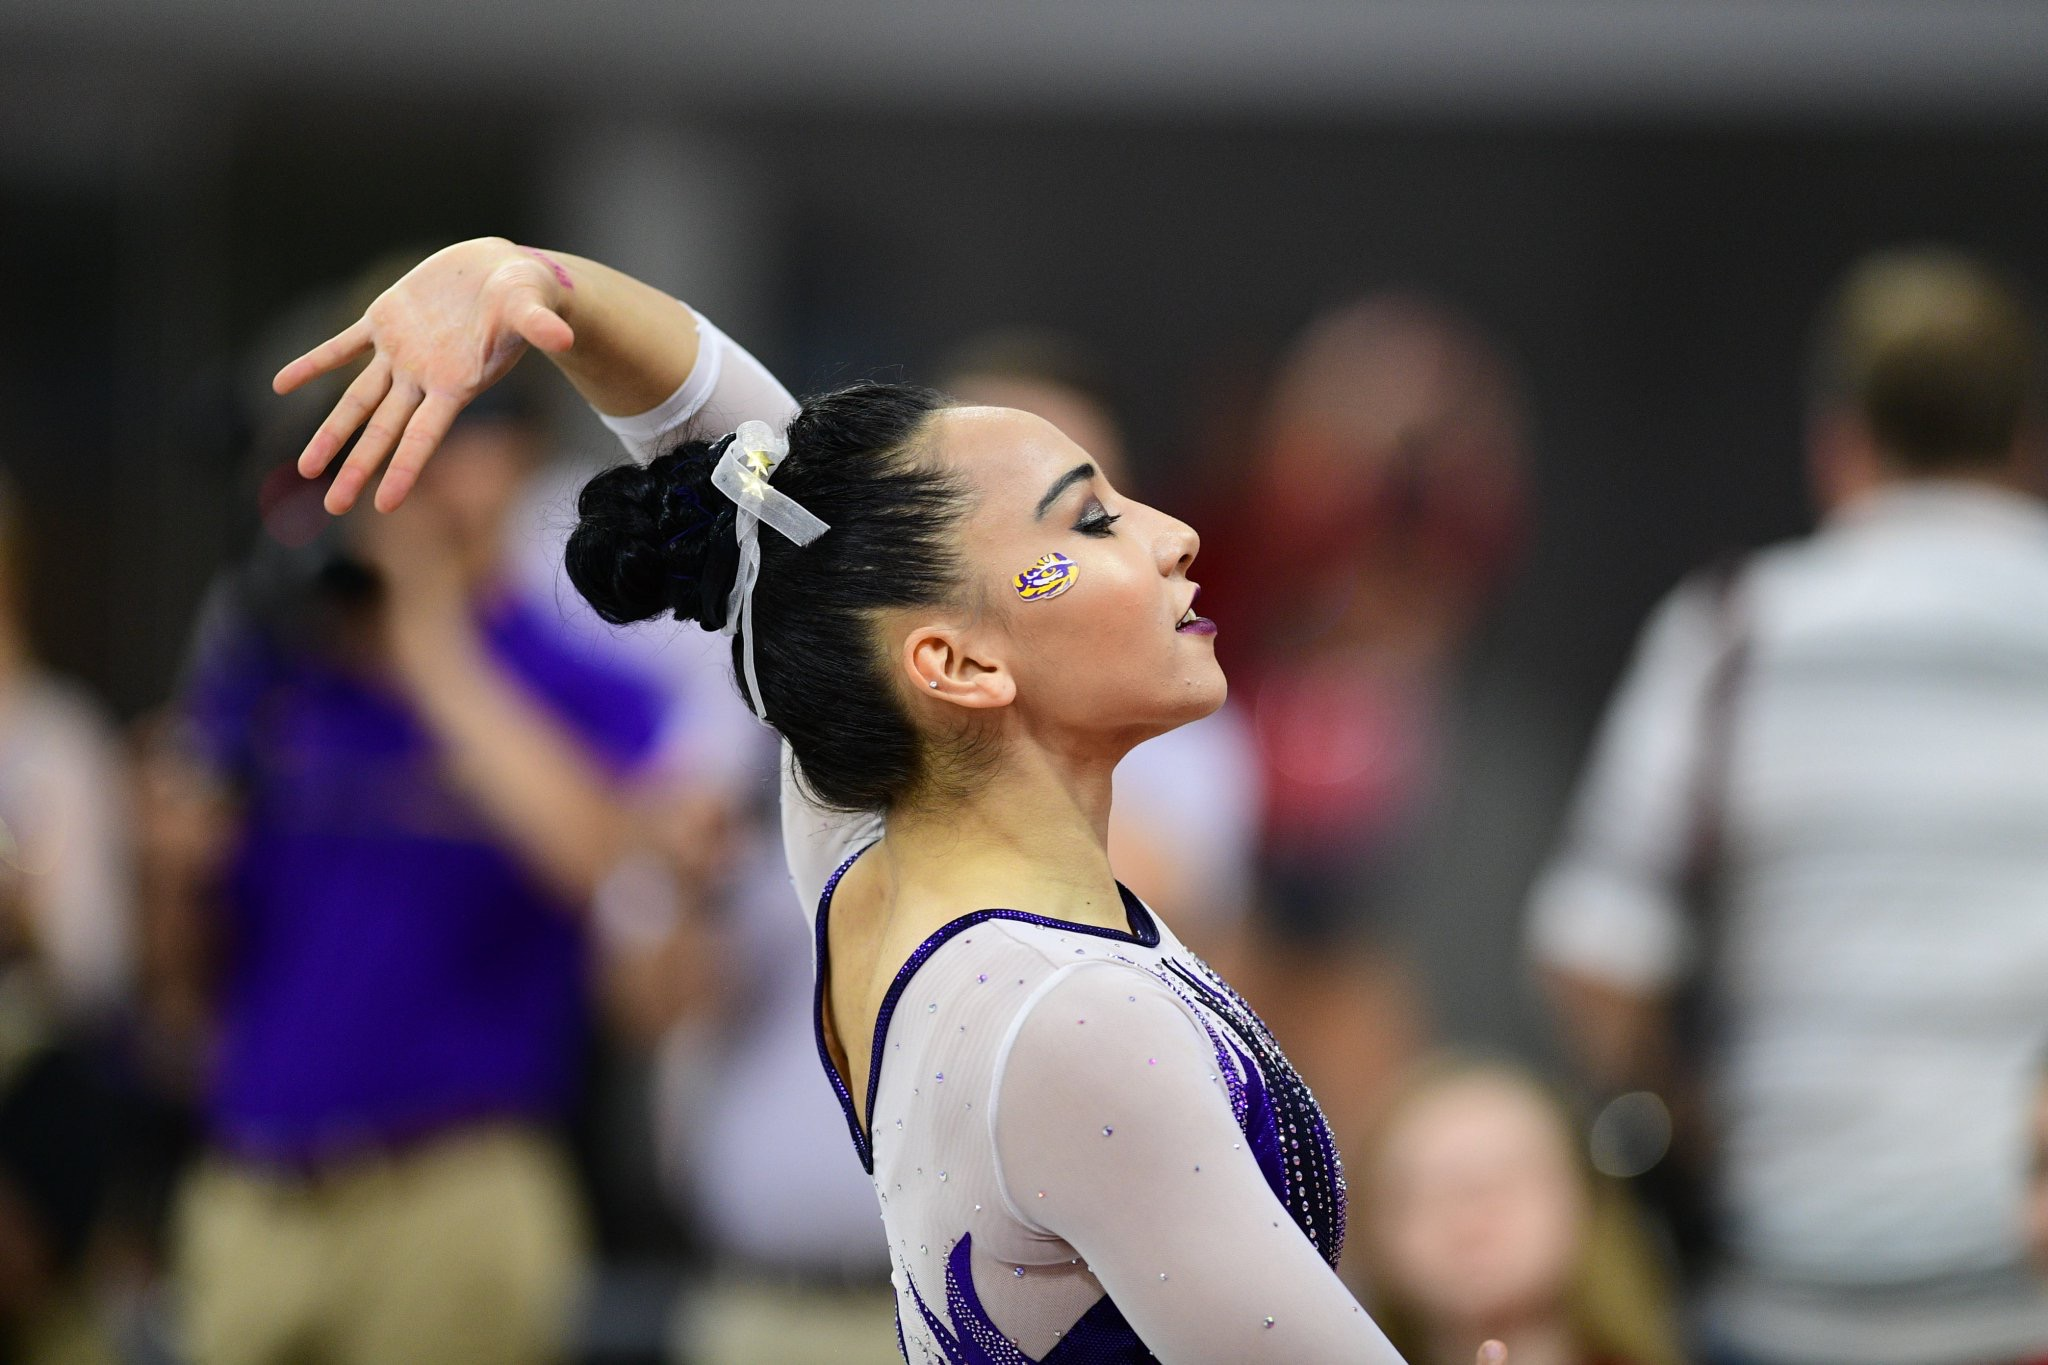 Gym prepares for 2018 NCAA Nationals in St. Louis